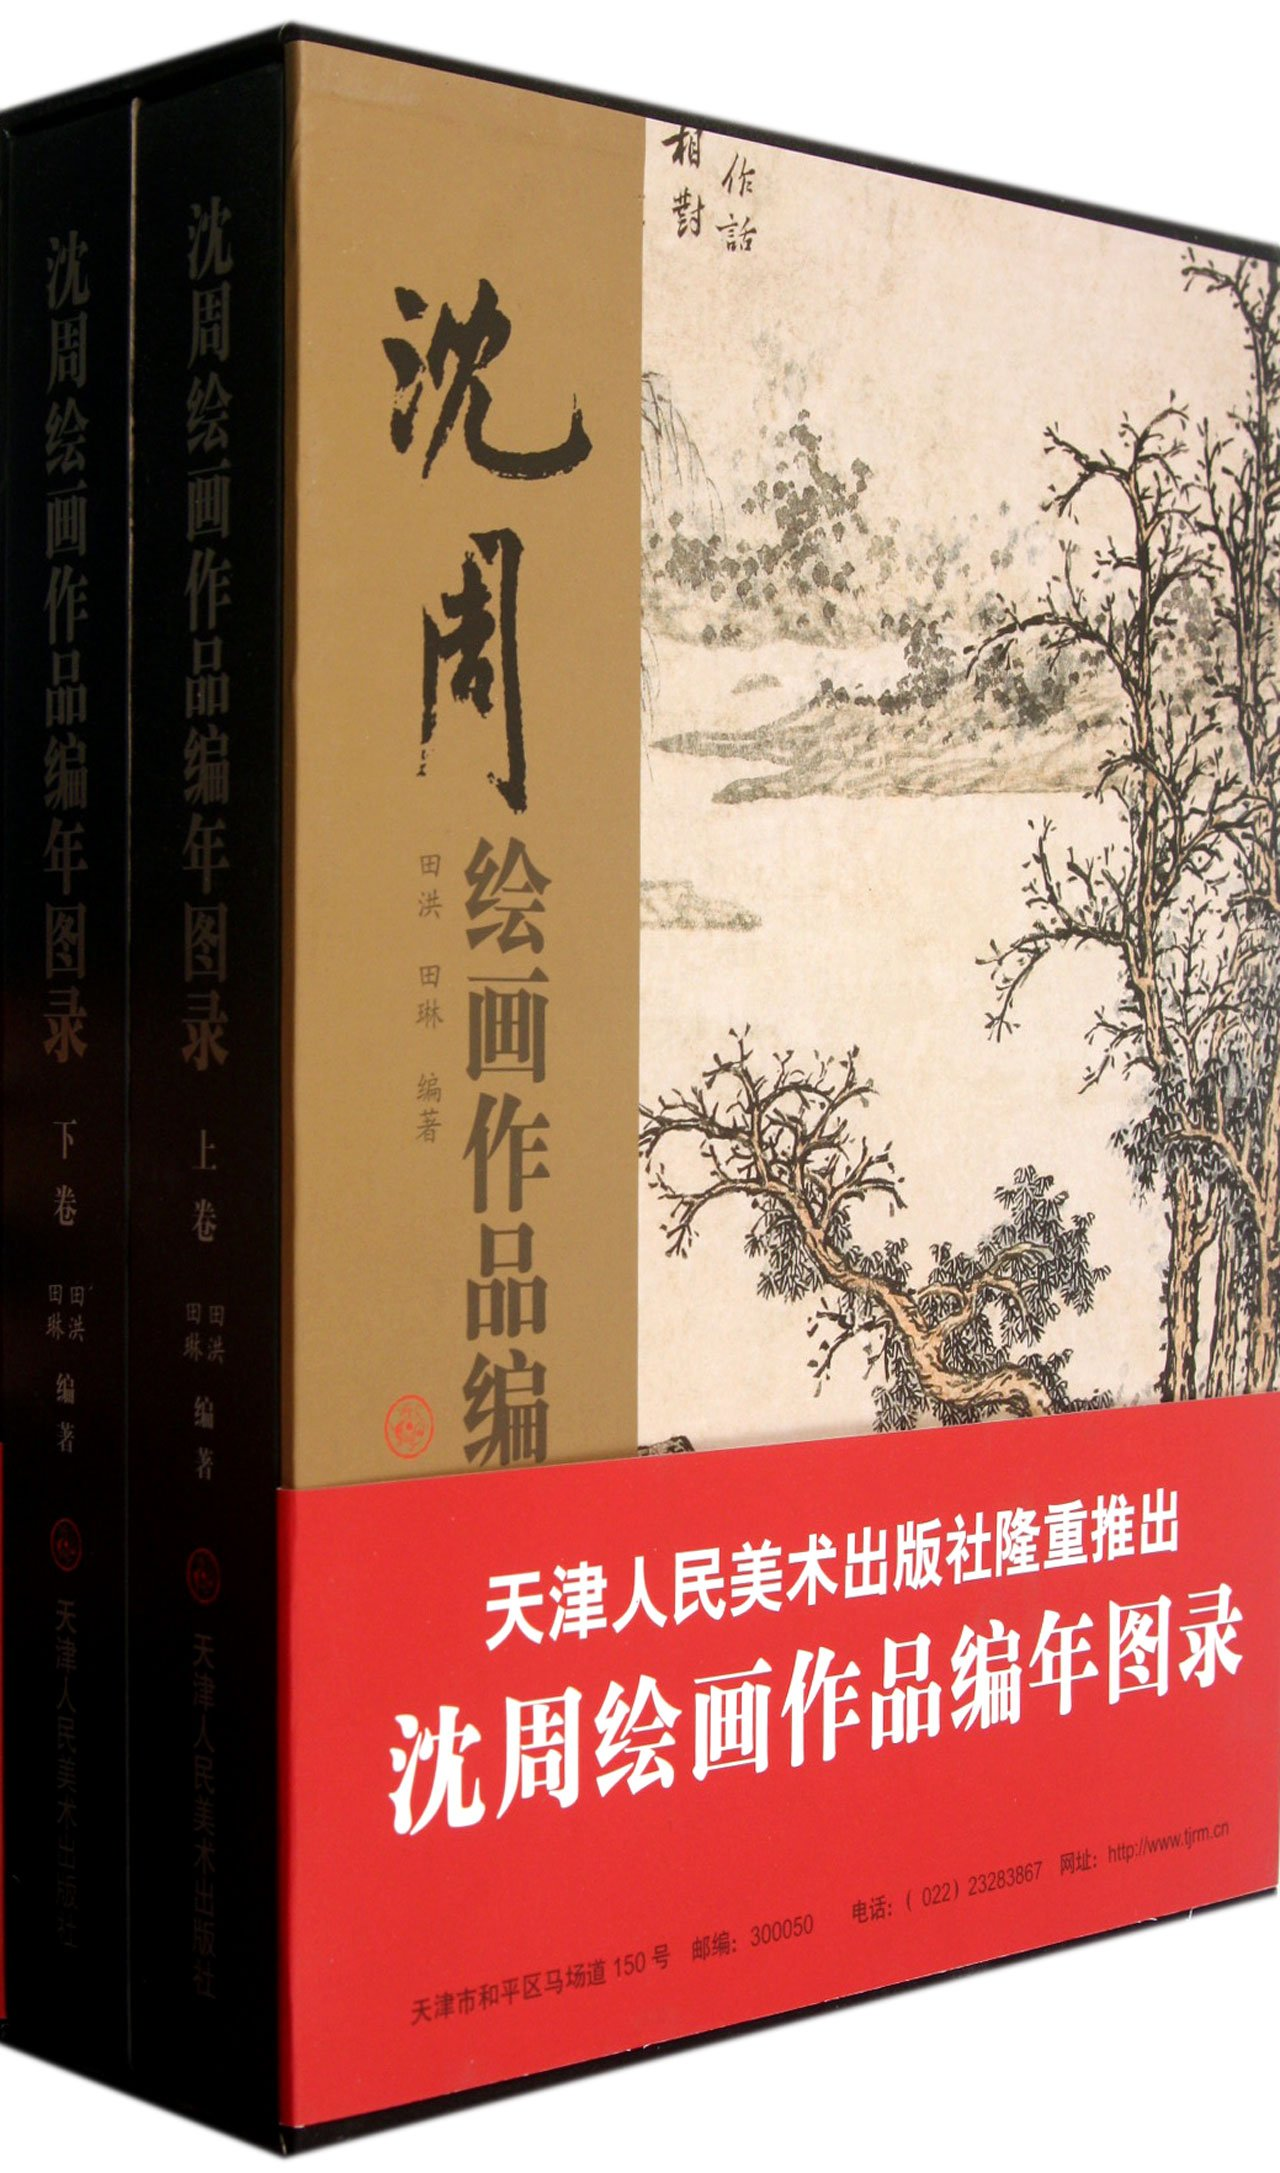 Read Online Album of Shen Zhou's Paintings (2 volumes) (Chinese Edition) pdf